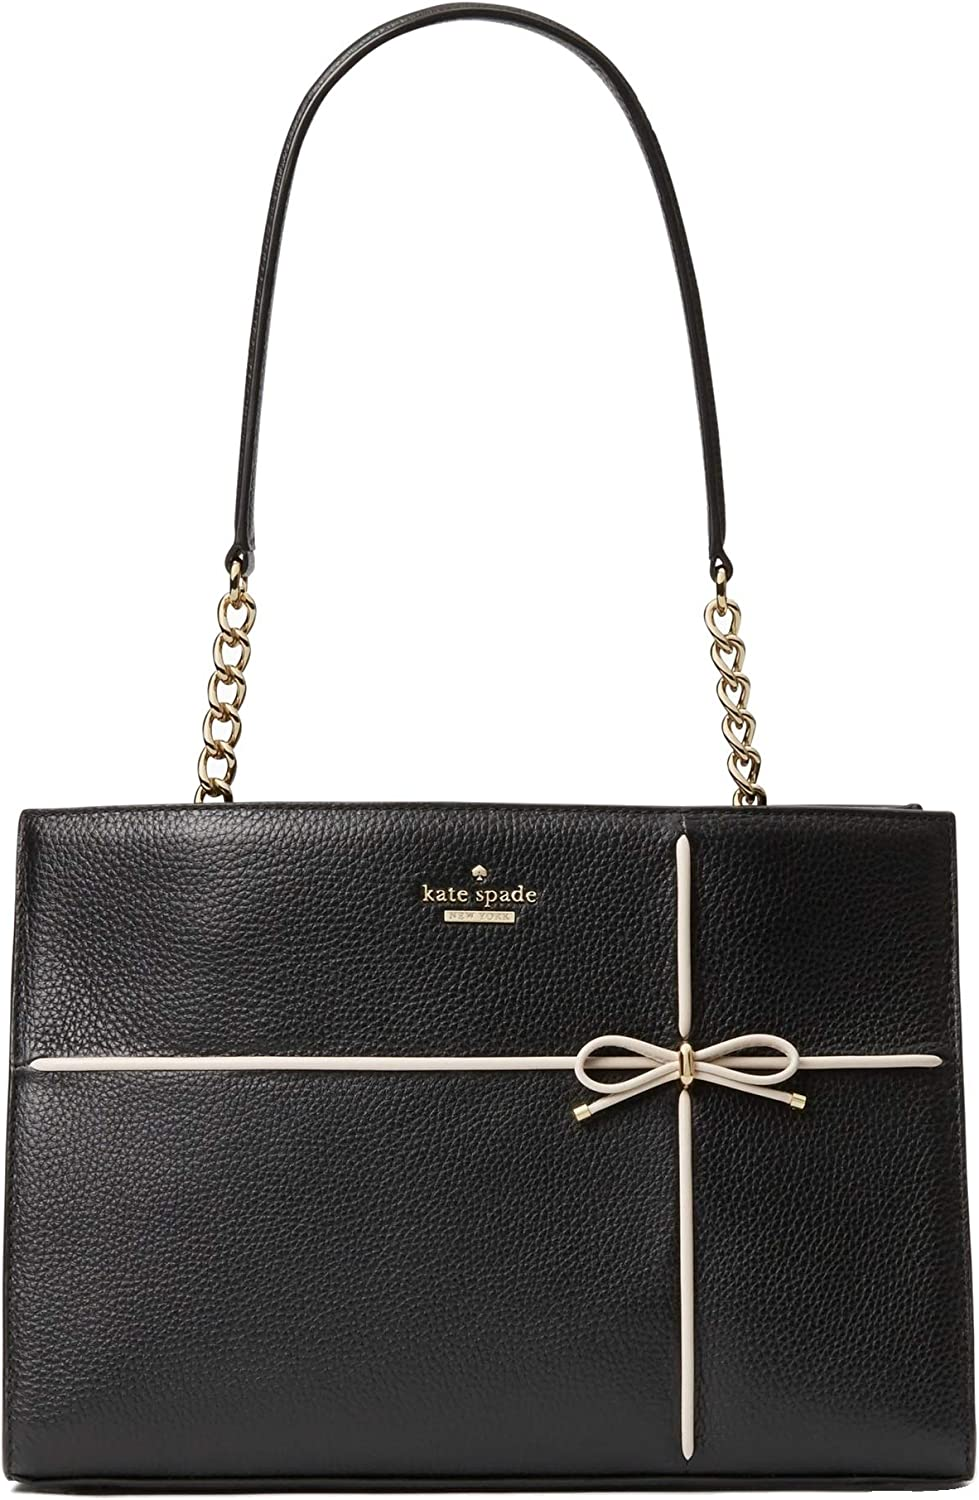 Kate Spade New York Cherry Street Small Phoebe Leather Tote Shoulder Bags